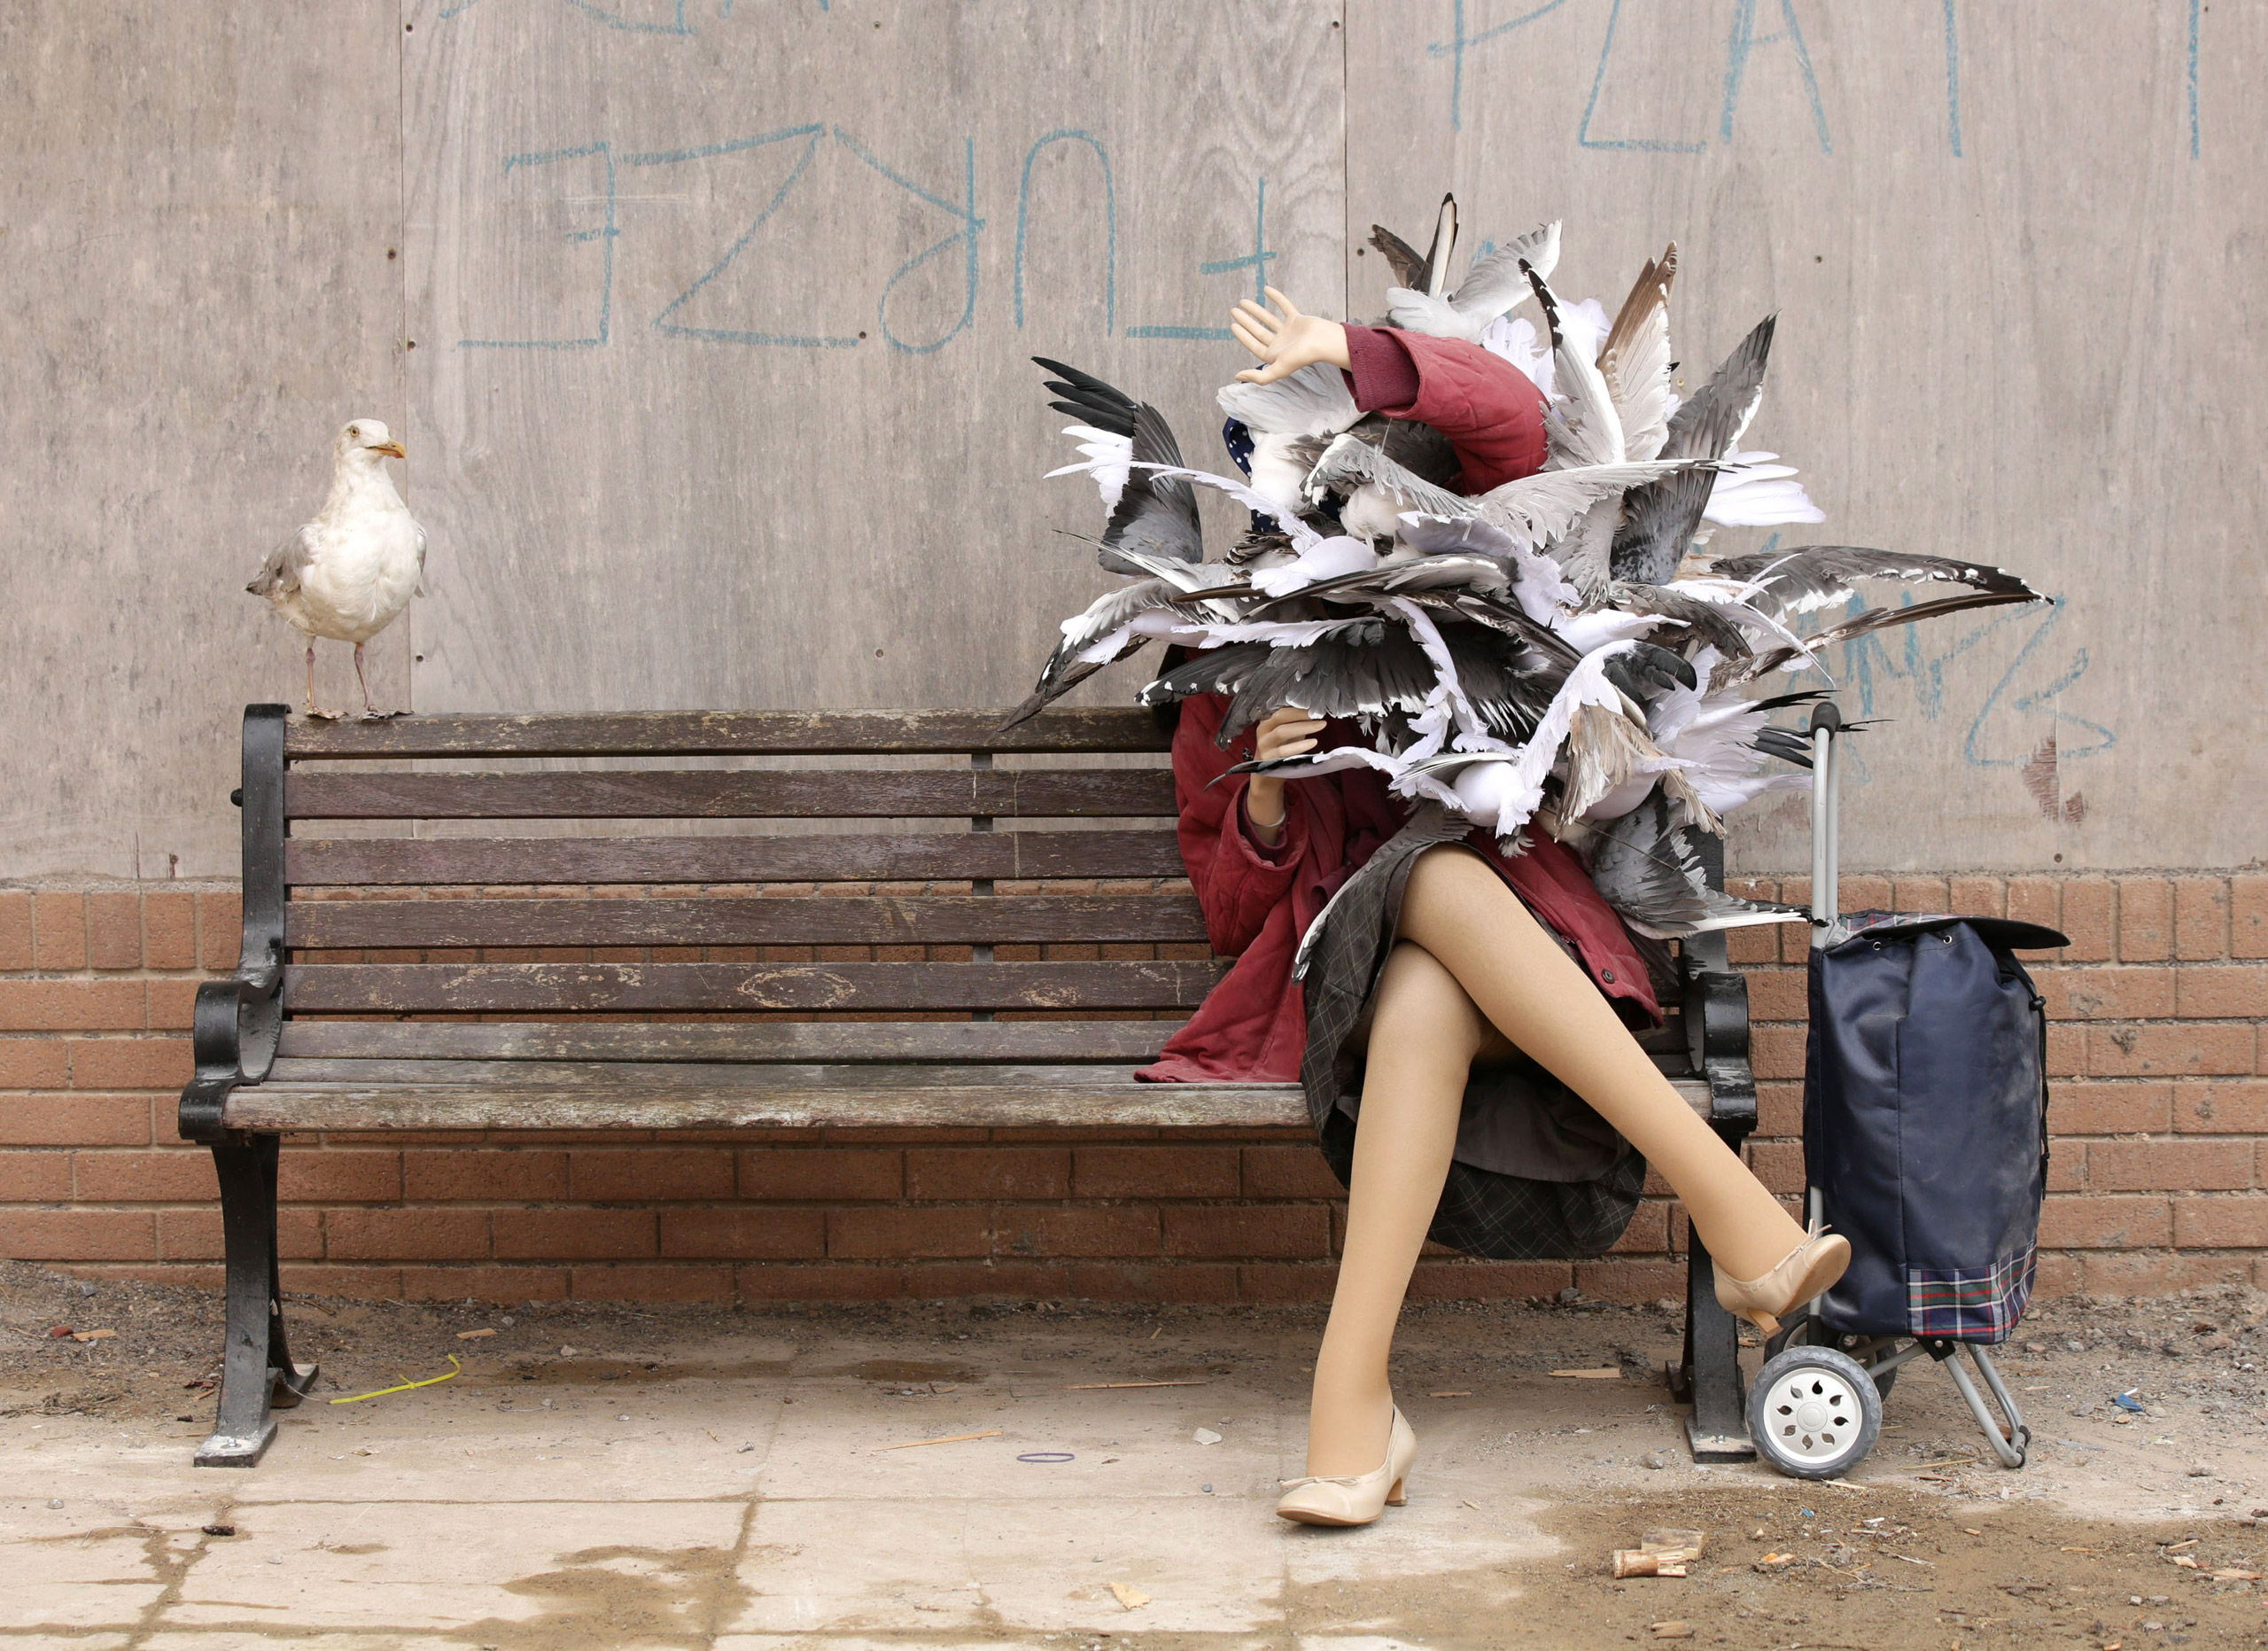 A  sculpture of a woman attacked by seagulls by Banksy .